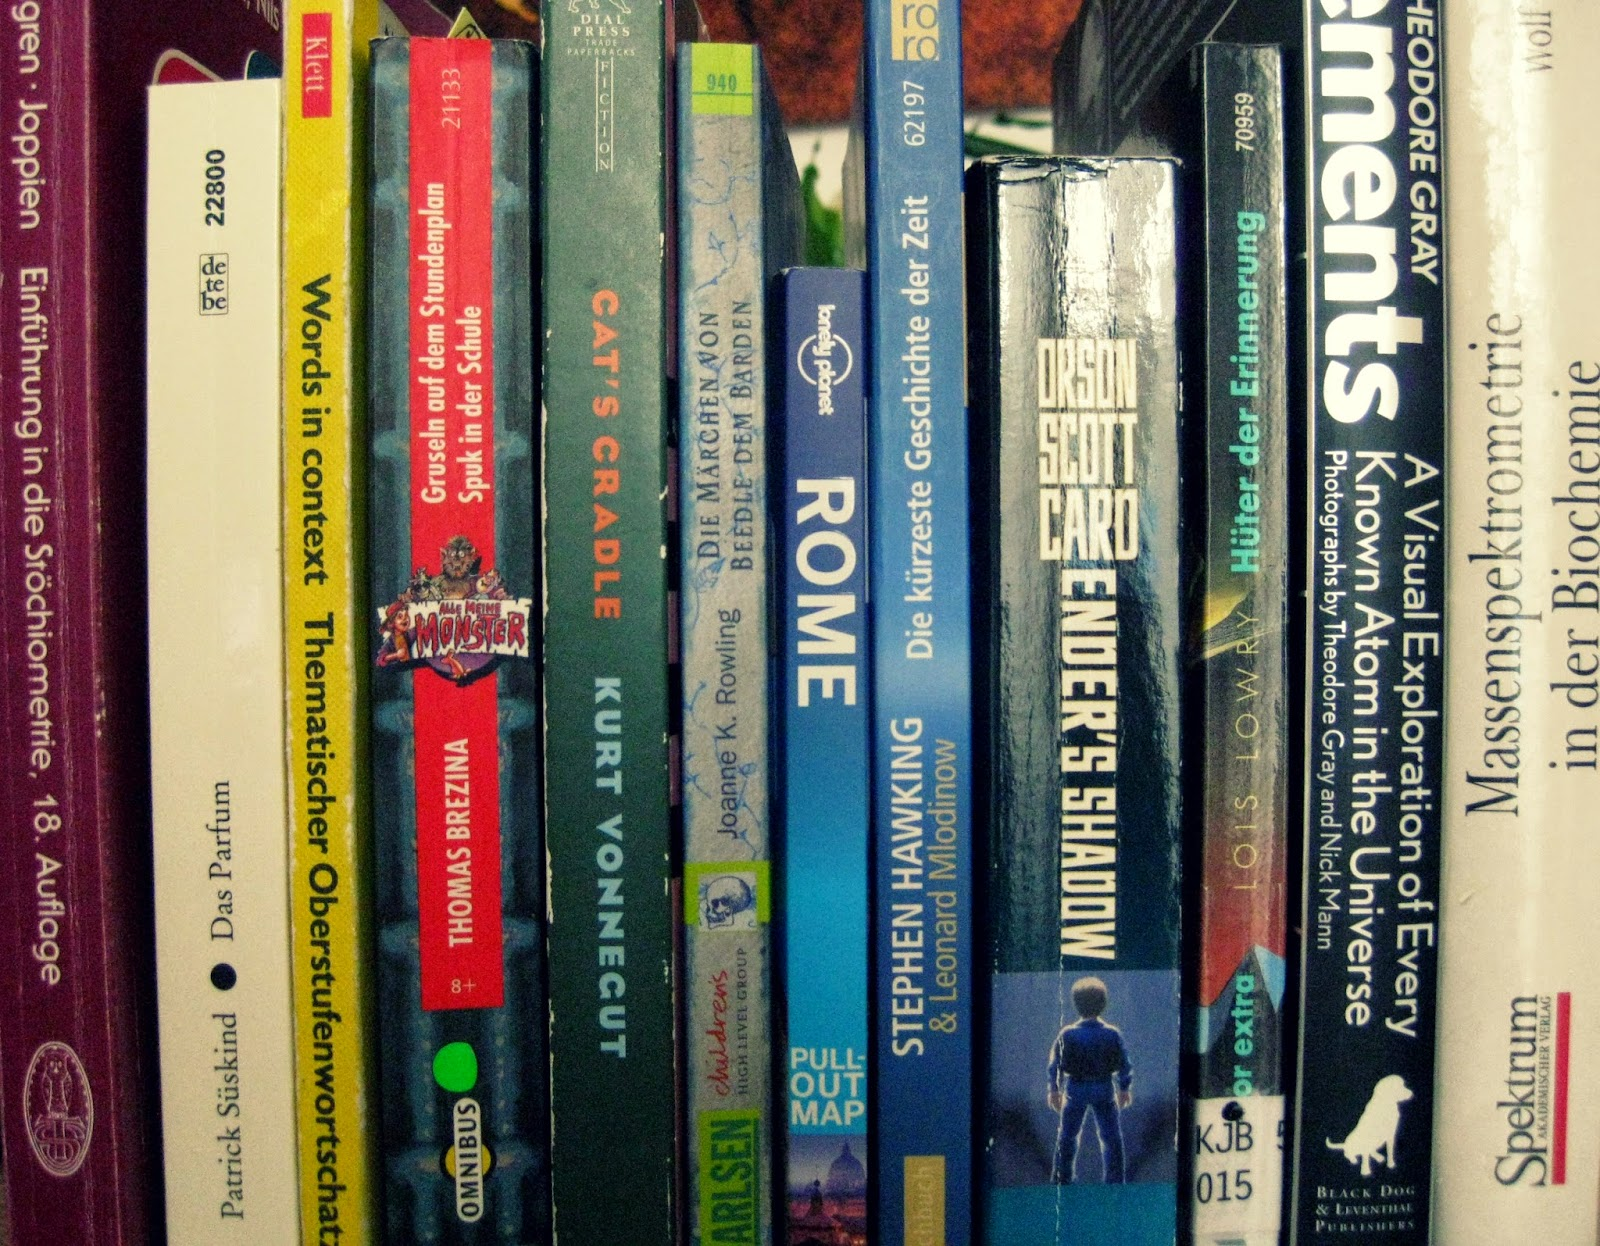 spines german books problems serious issue